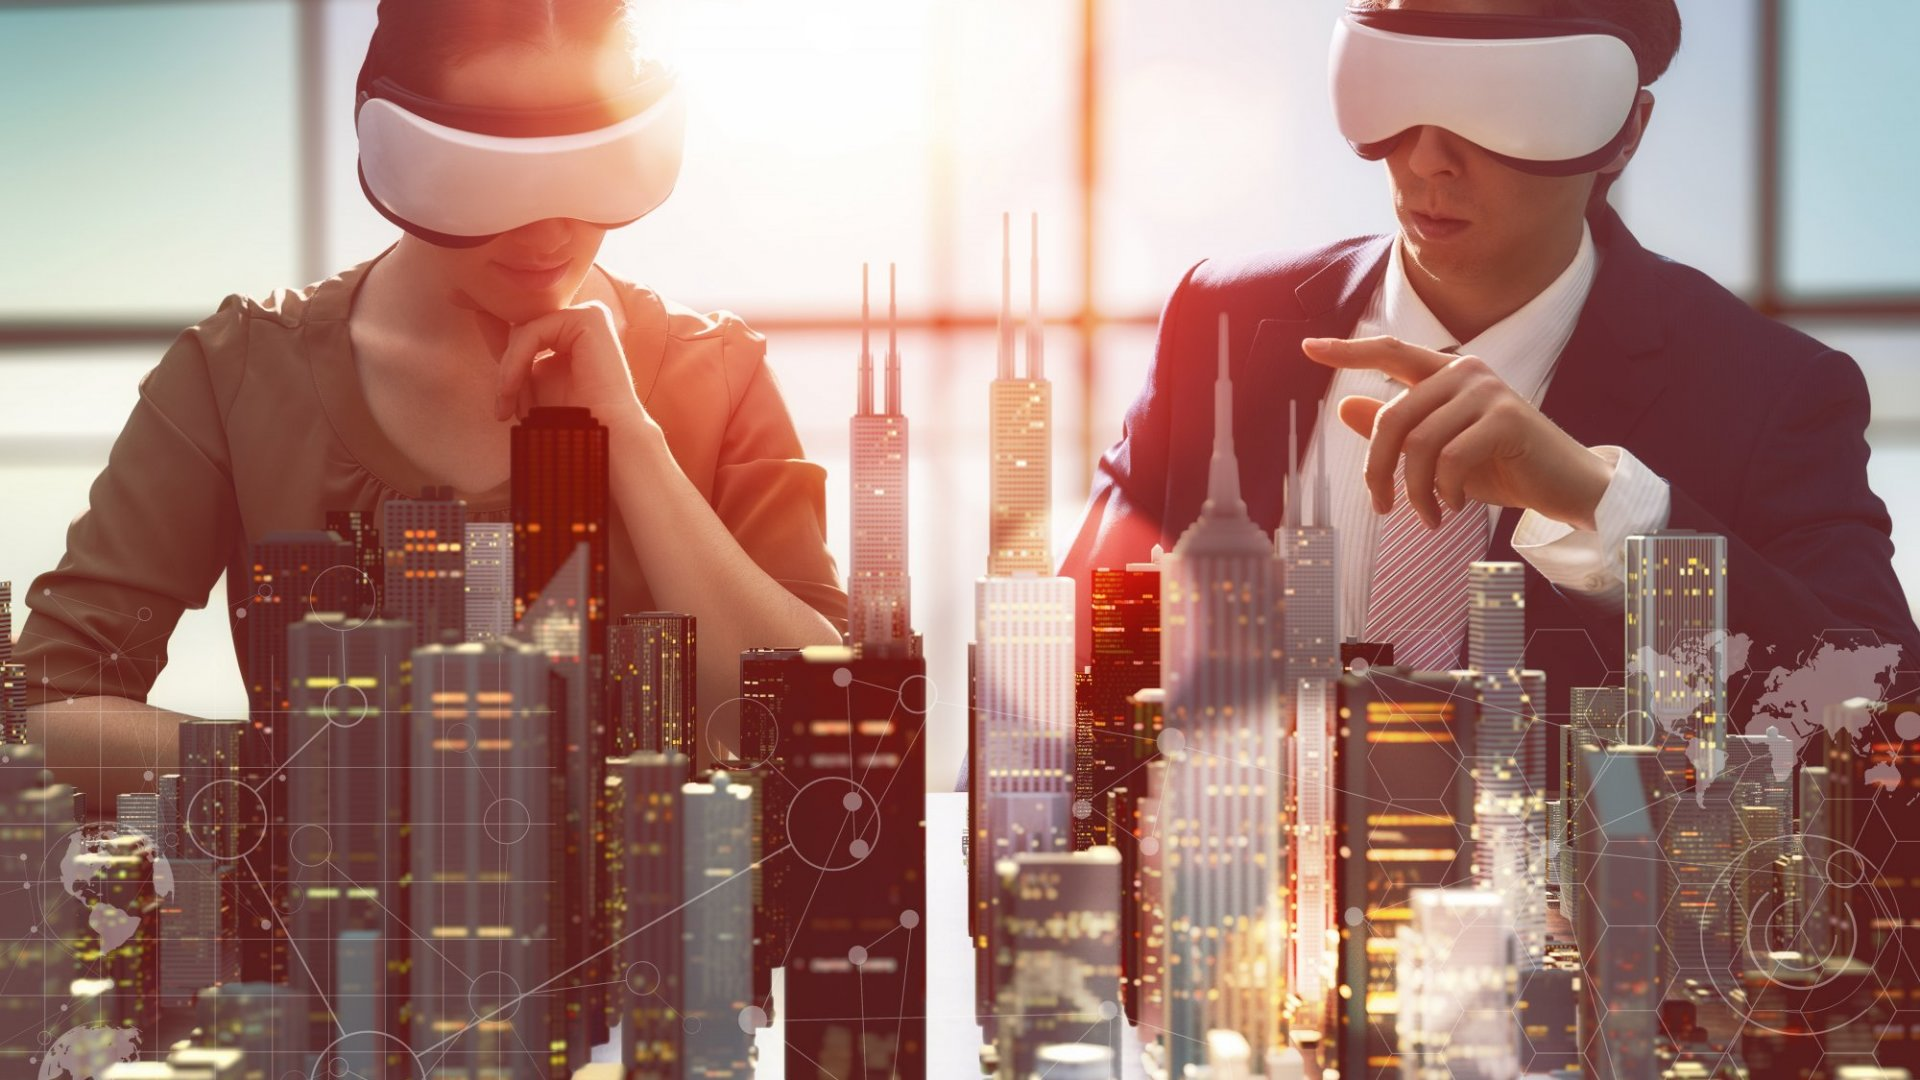 Shared vision real estate development begins with virtual reality.